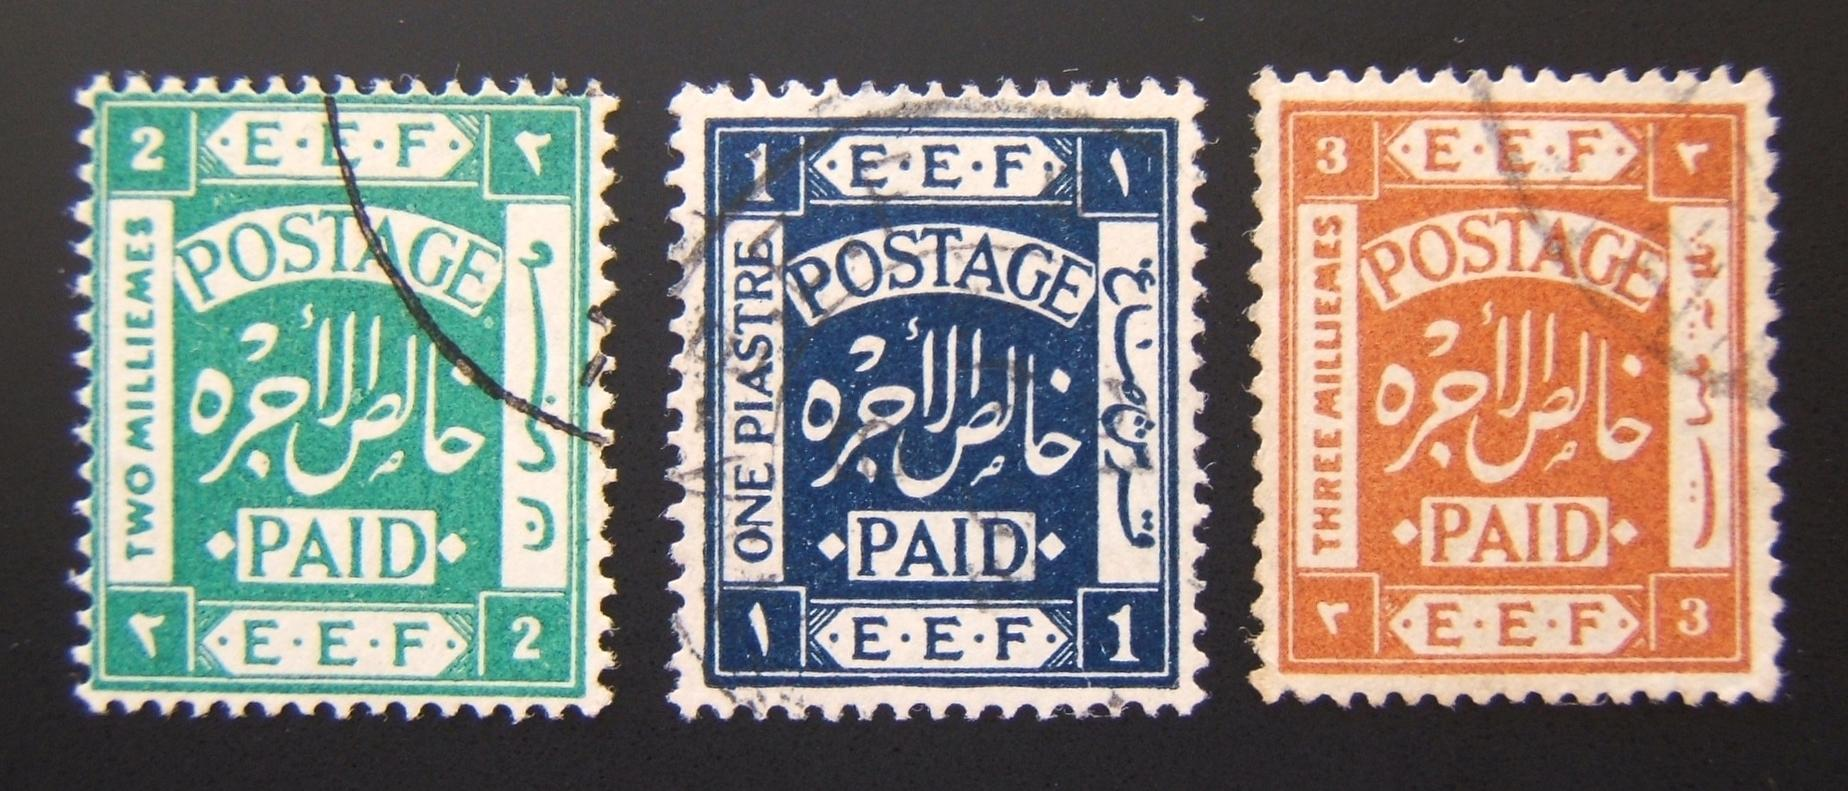 Lot x3 1918 EEF type III used stps: 2m (trunc. 2), 3m used abroad (Ba 7), 1p used abroad